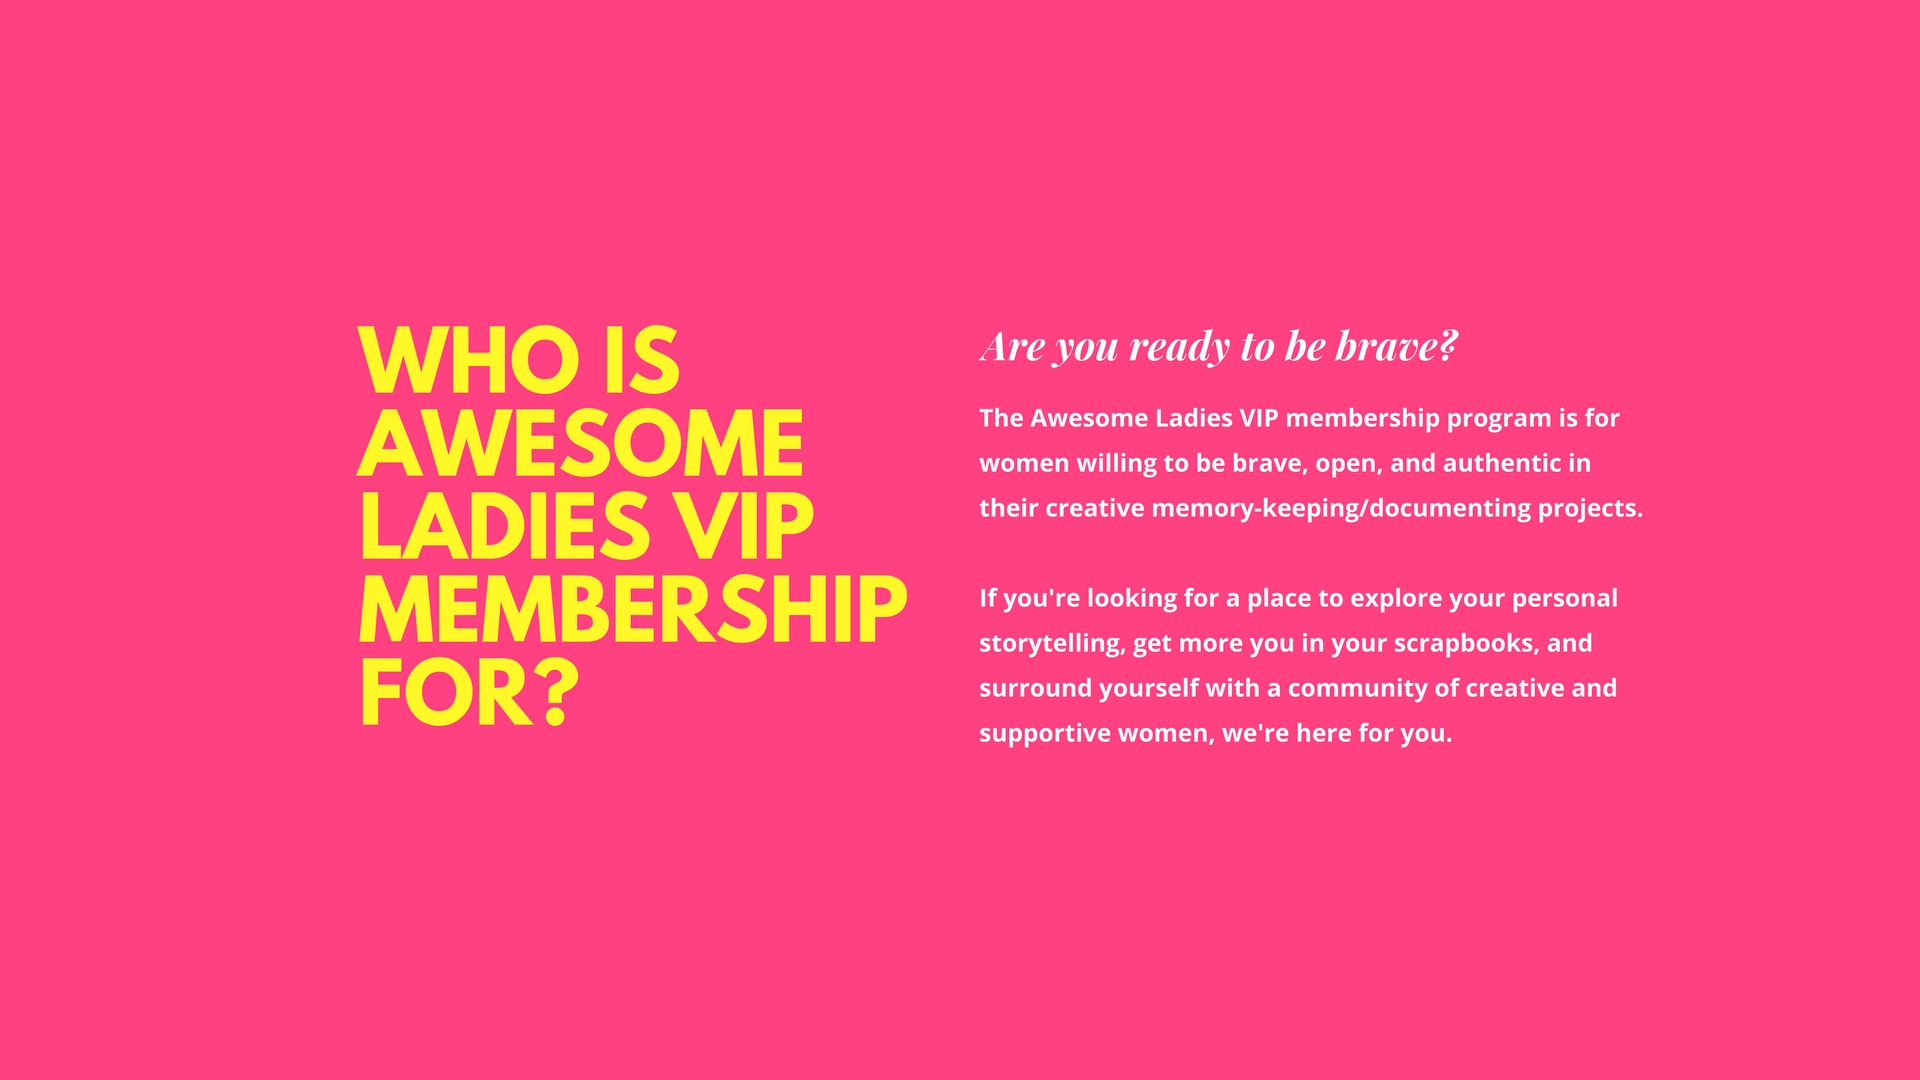 awesome ladies vip membership